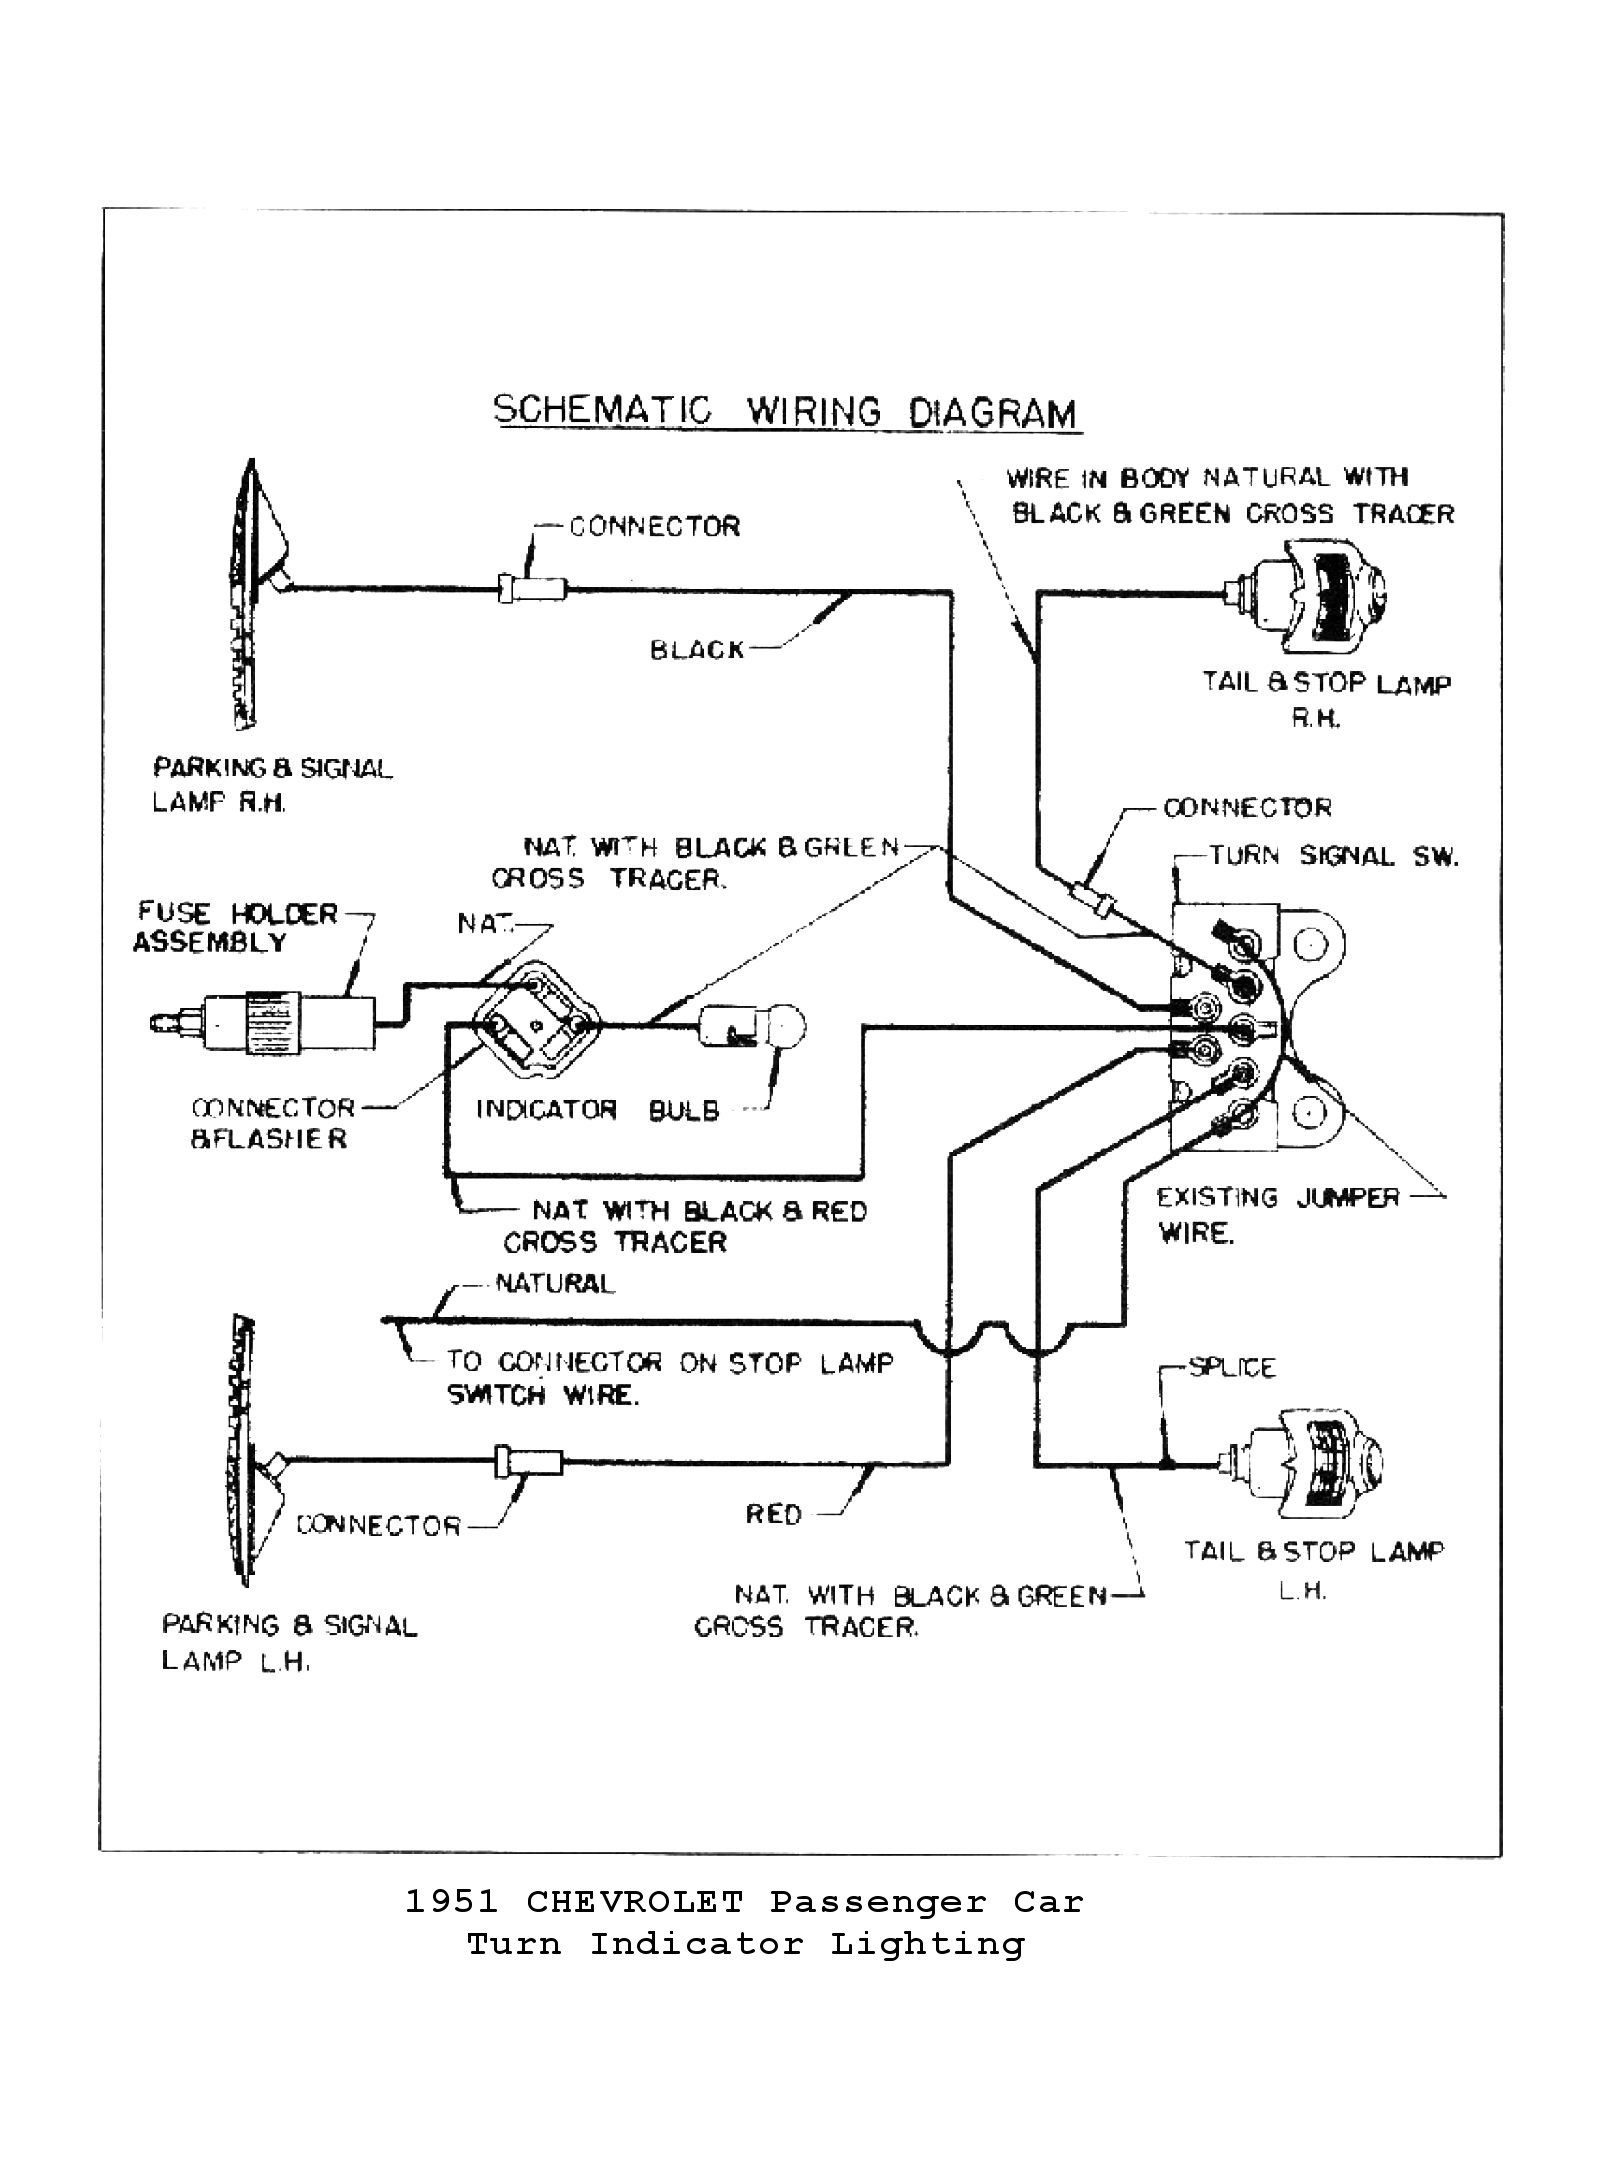 1962 Chevy Pickup Turn Signal Diagram Wiring Will Be A Thing C10 1951 Ford Manual Data Schema Rh Site De Joueurs Com Switch Relay